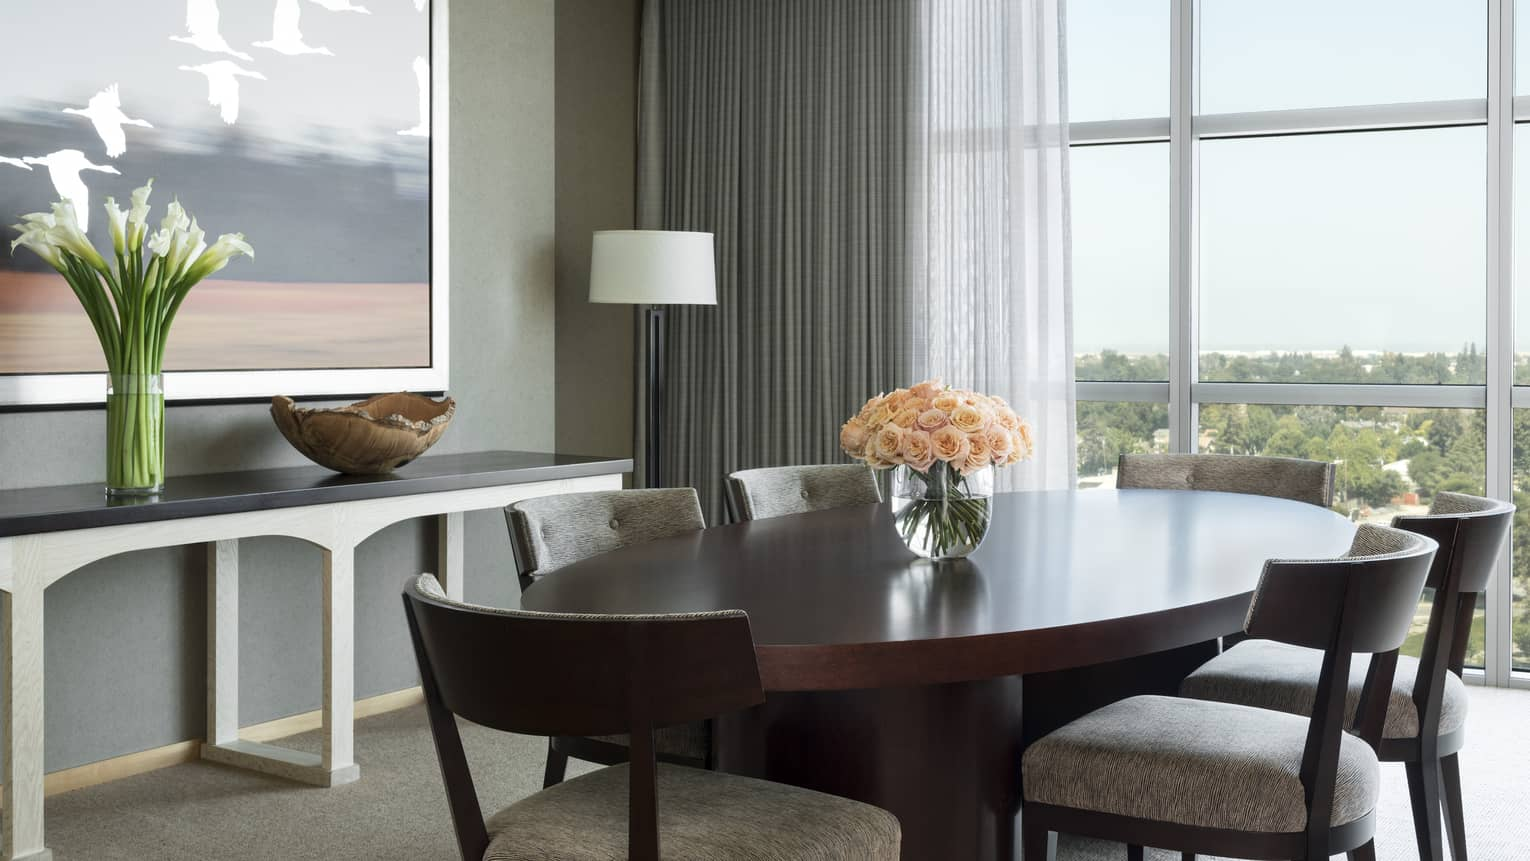 Presidential Suite round dining table, console and painting by floor-to-ceiling window